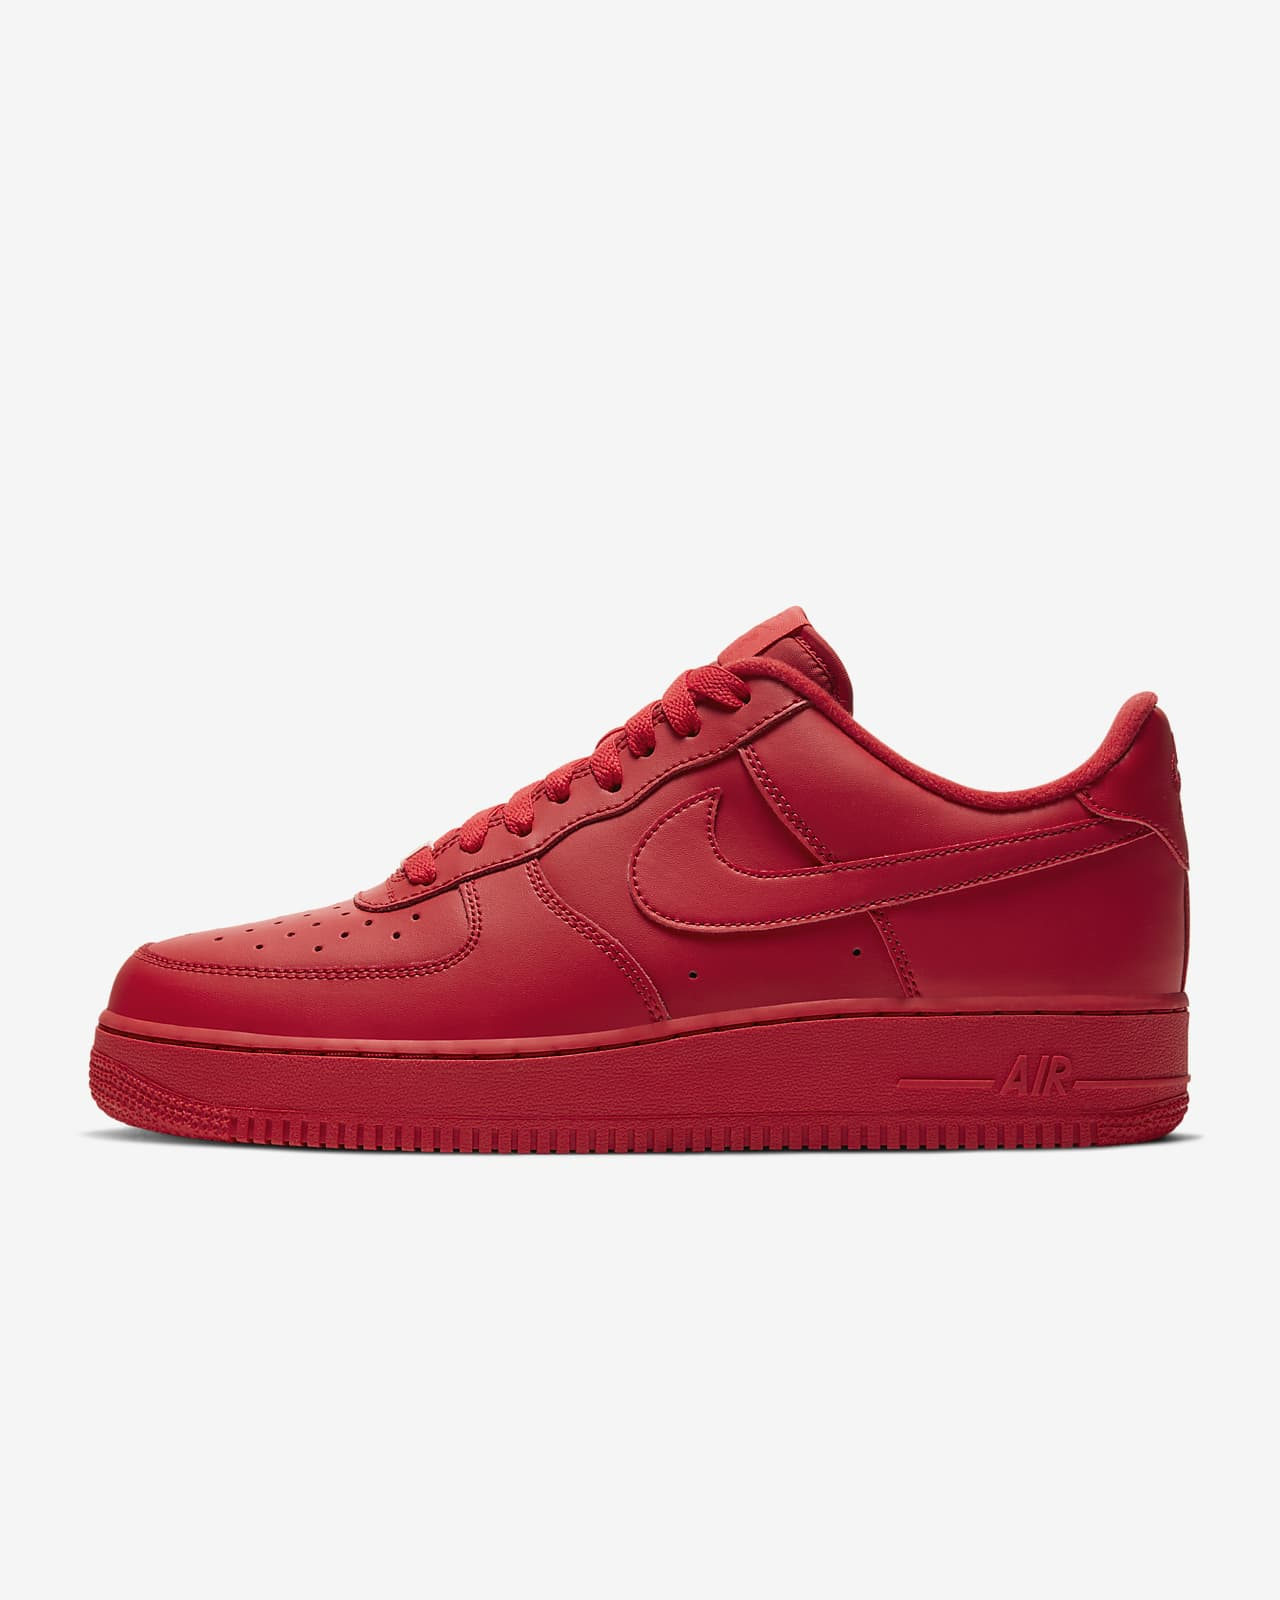 Nike Air Force 1 '07 LV8 1 Men's Shoes